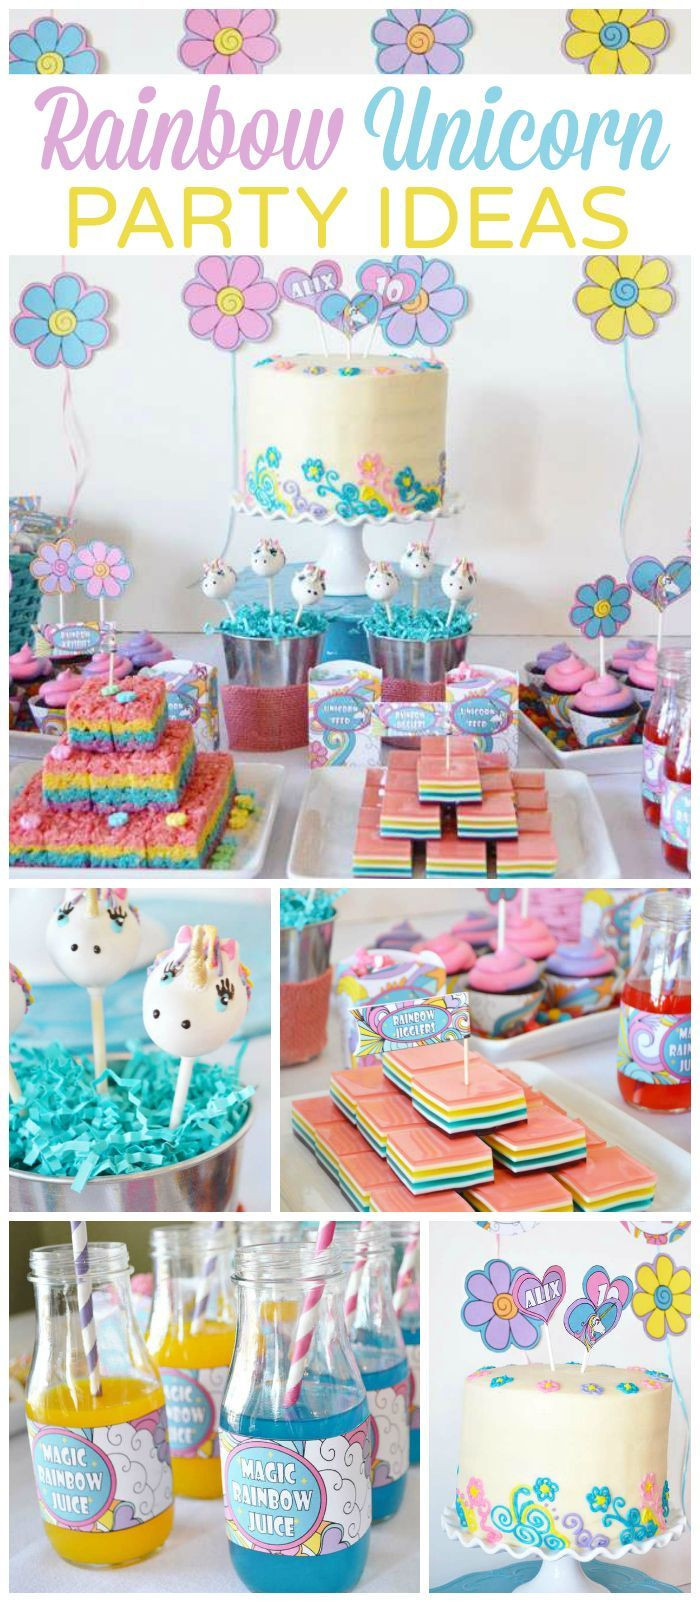 Unicorn And Rainbow Birthday Party Ideas  25 best ideas about Rainbow unicorn on Pinterest